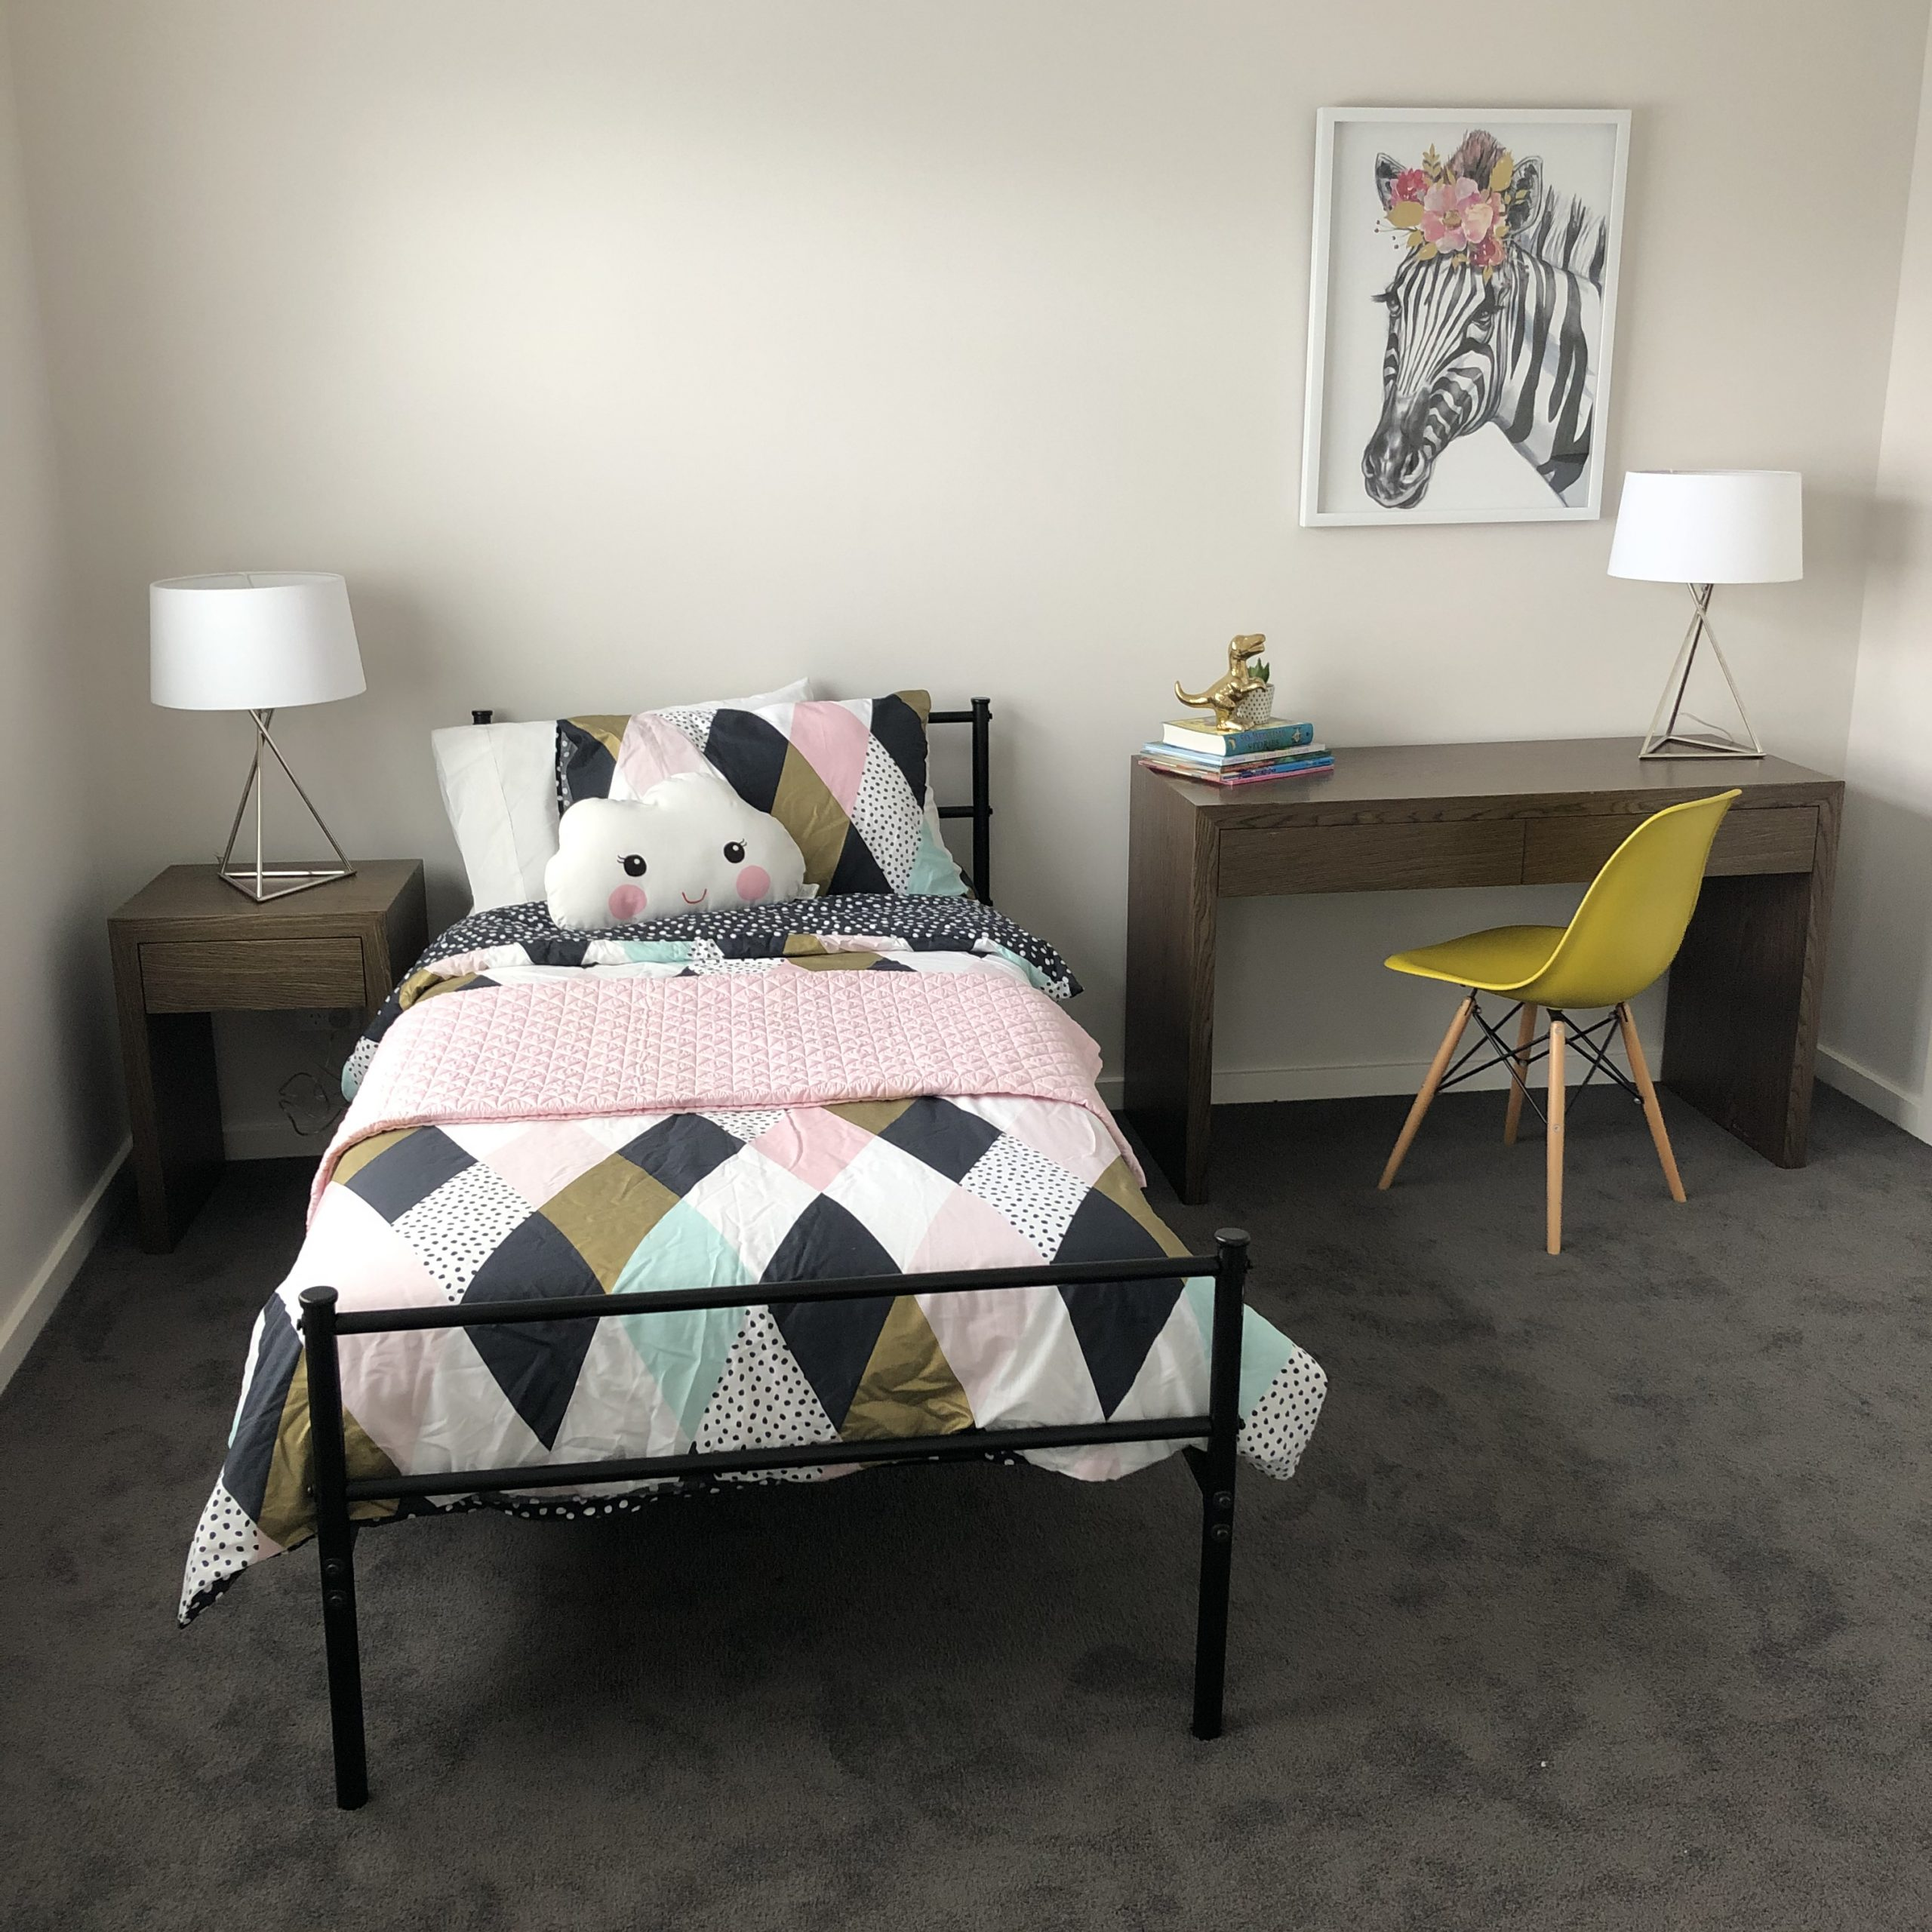 styled childrens bedroom with desk space - Melbourne Home Staging - Leeder Interiors